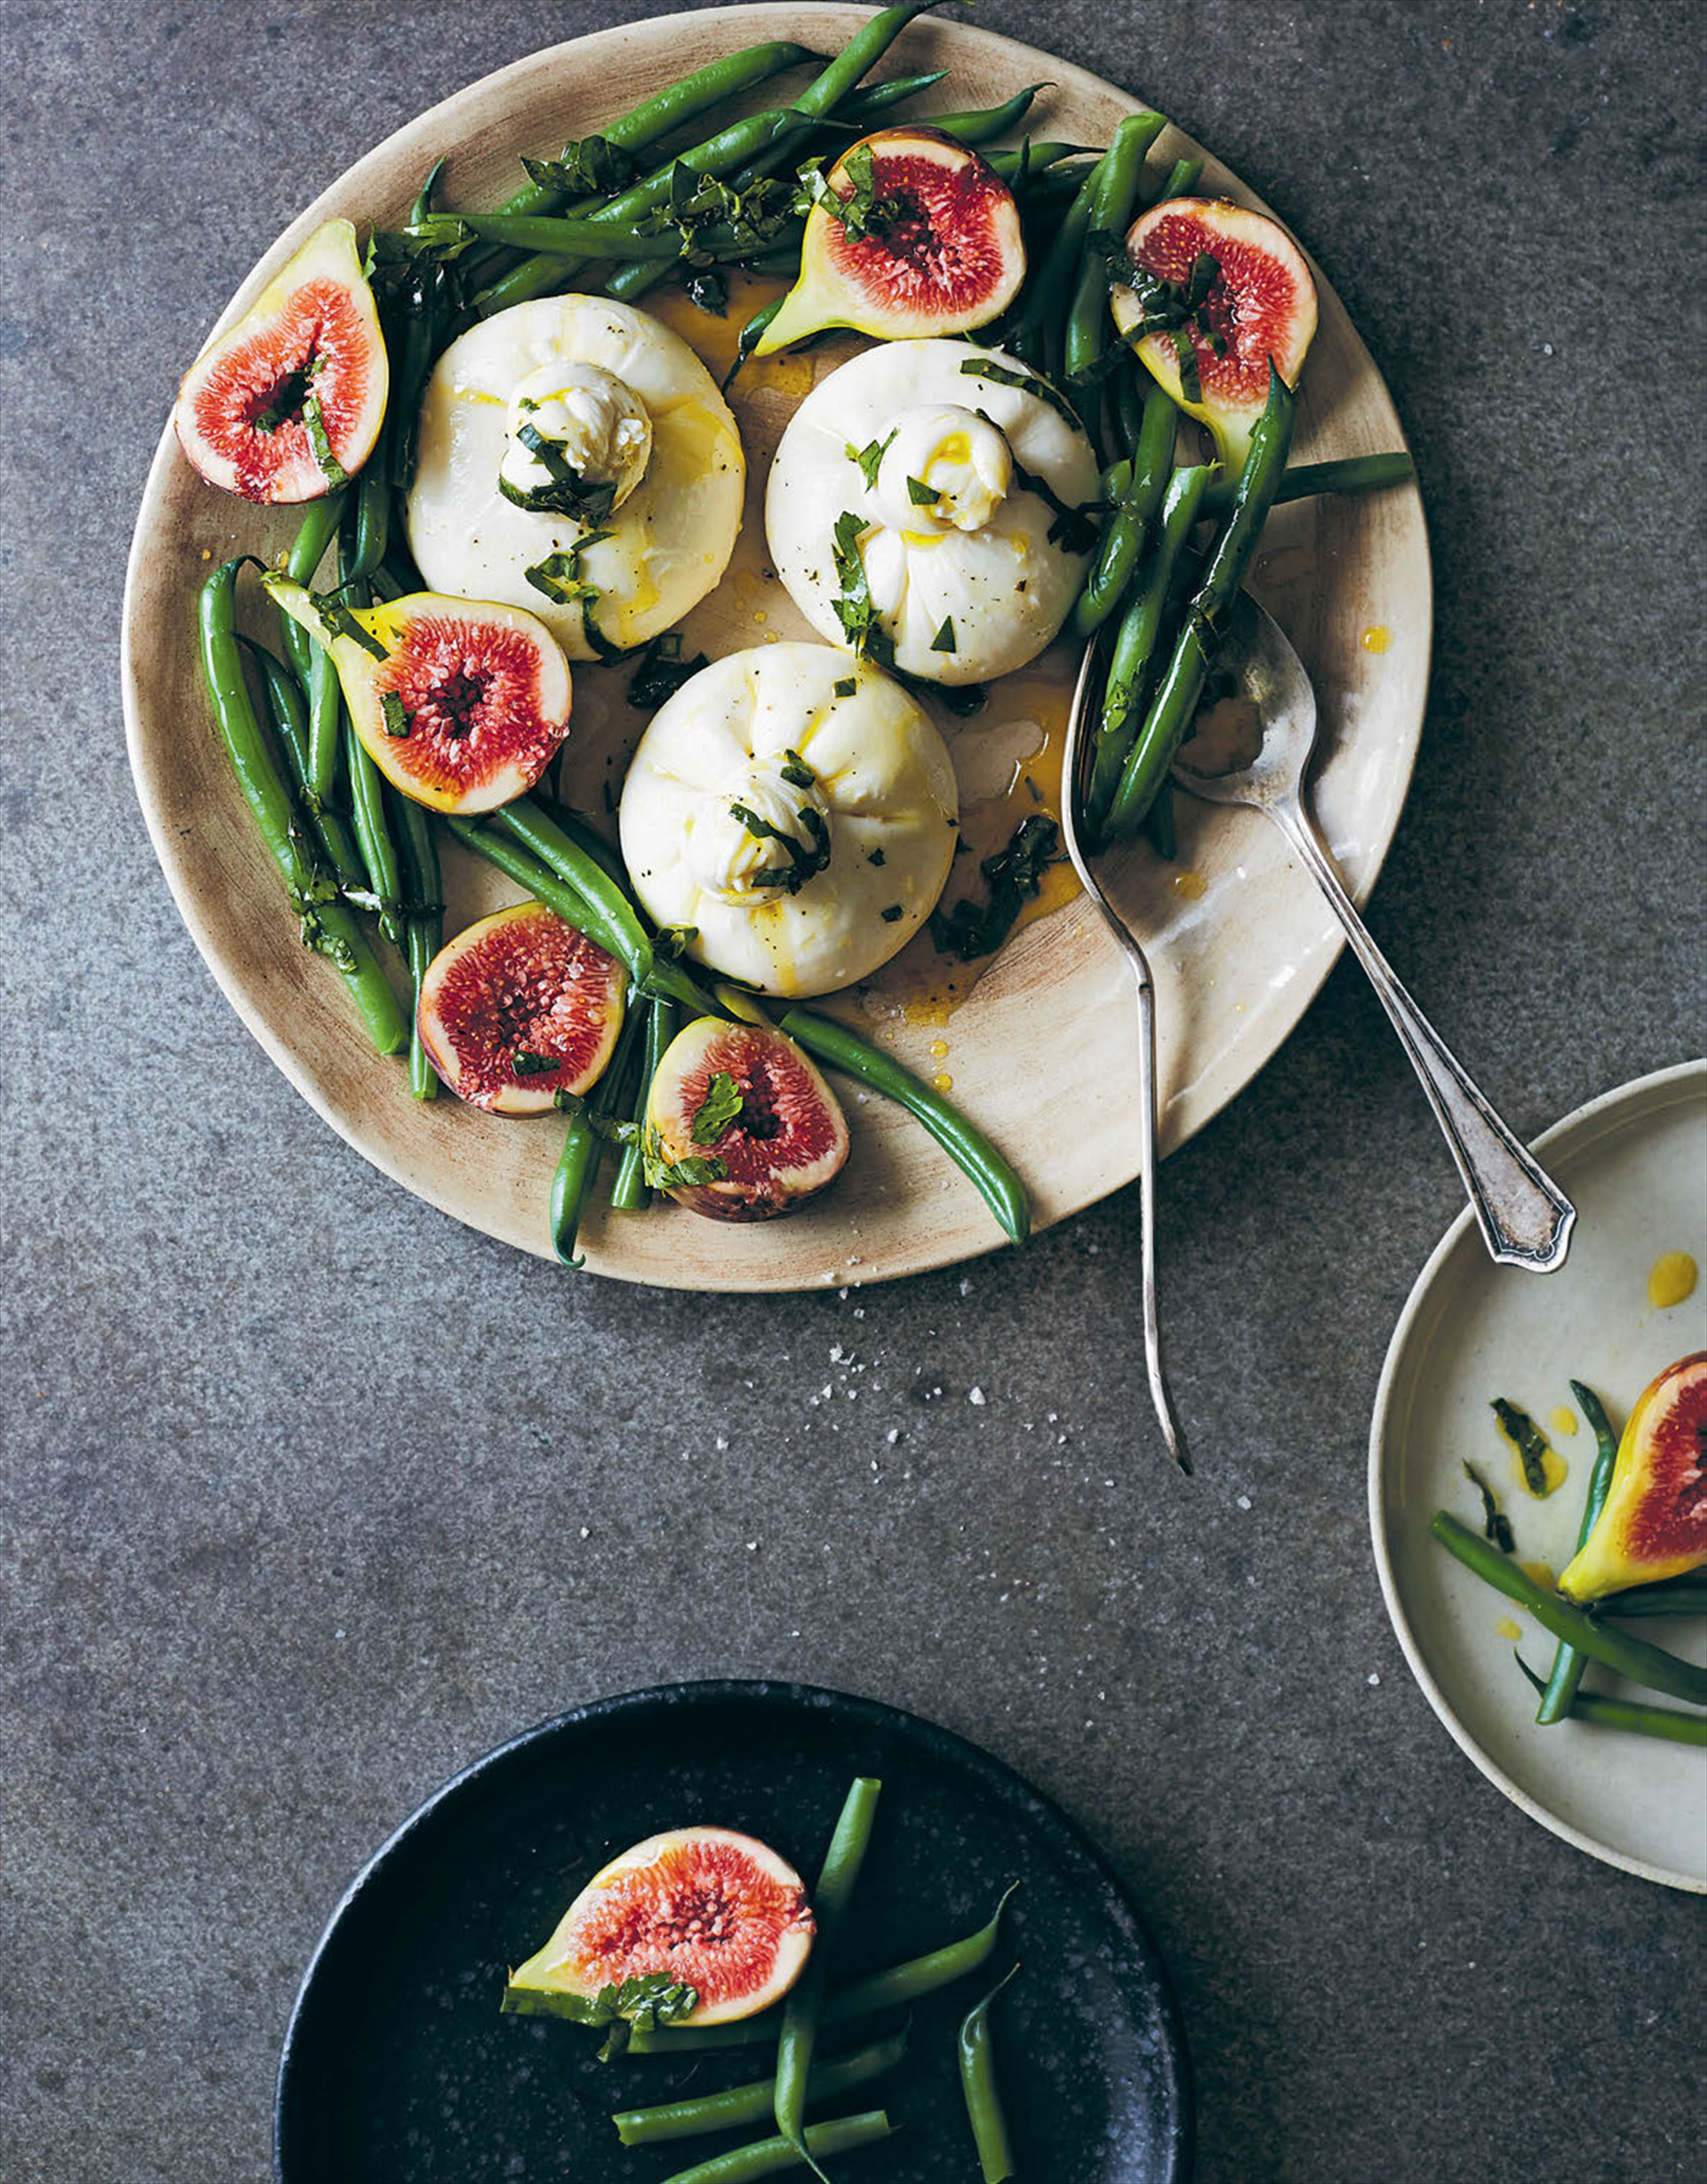 Burrata with green beans